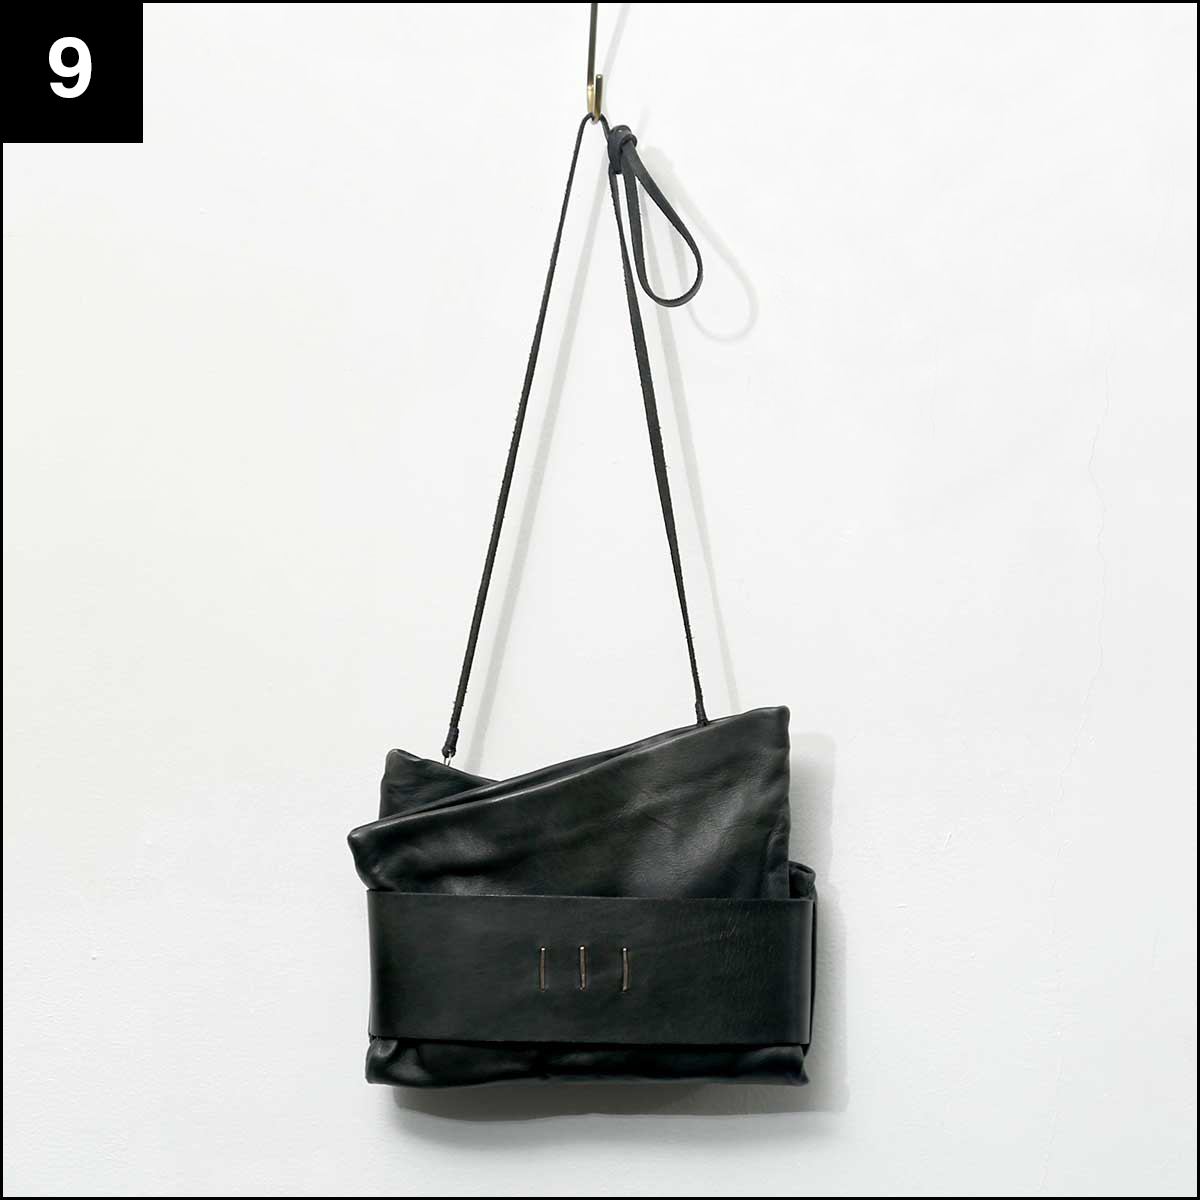 DANIELE BASTA_3WAY CLUTCH BAG